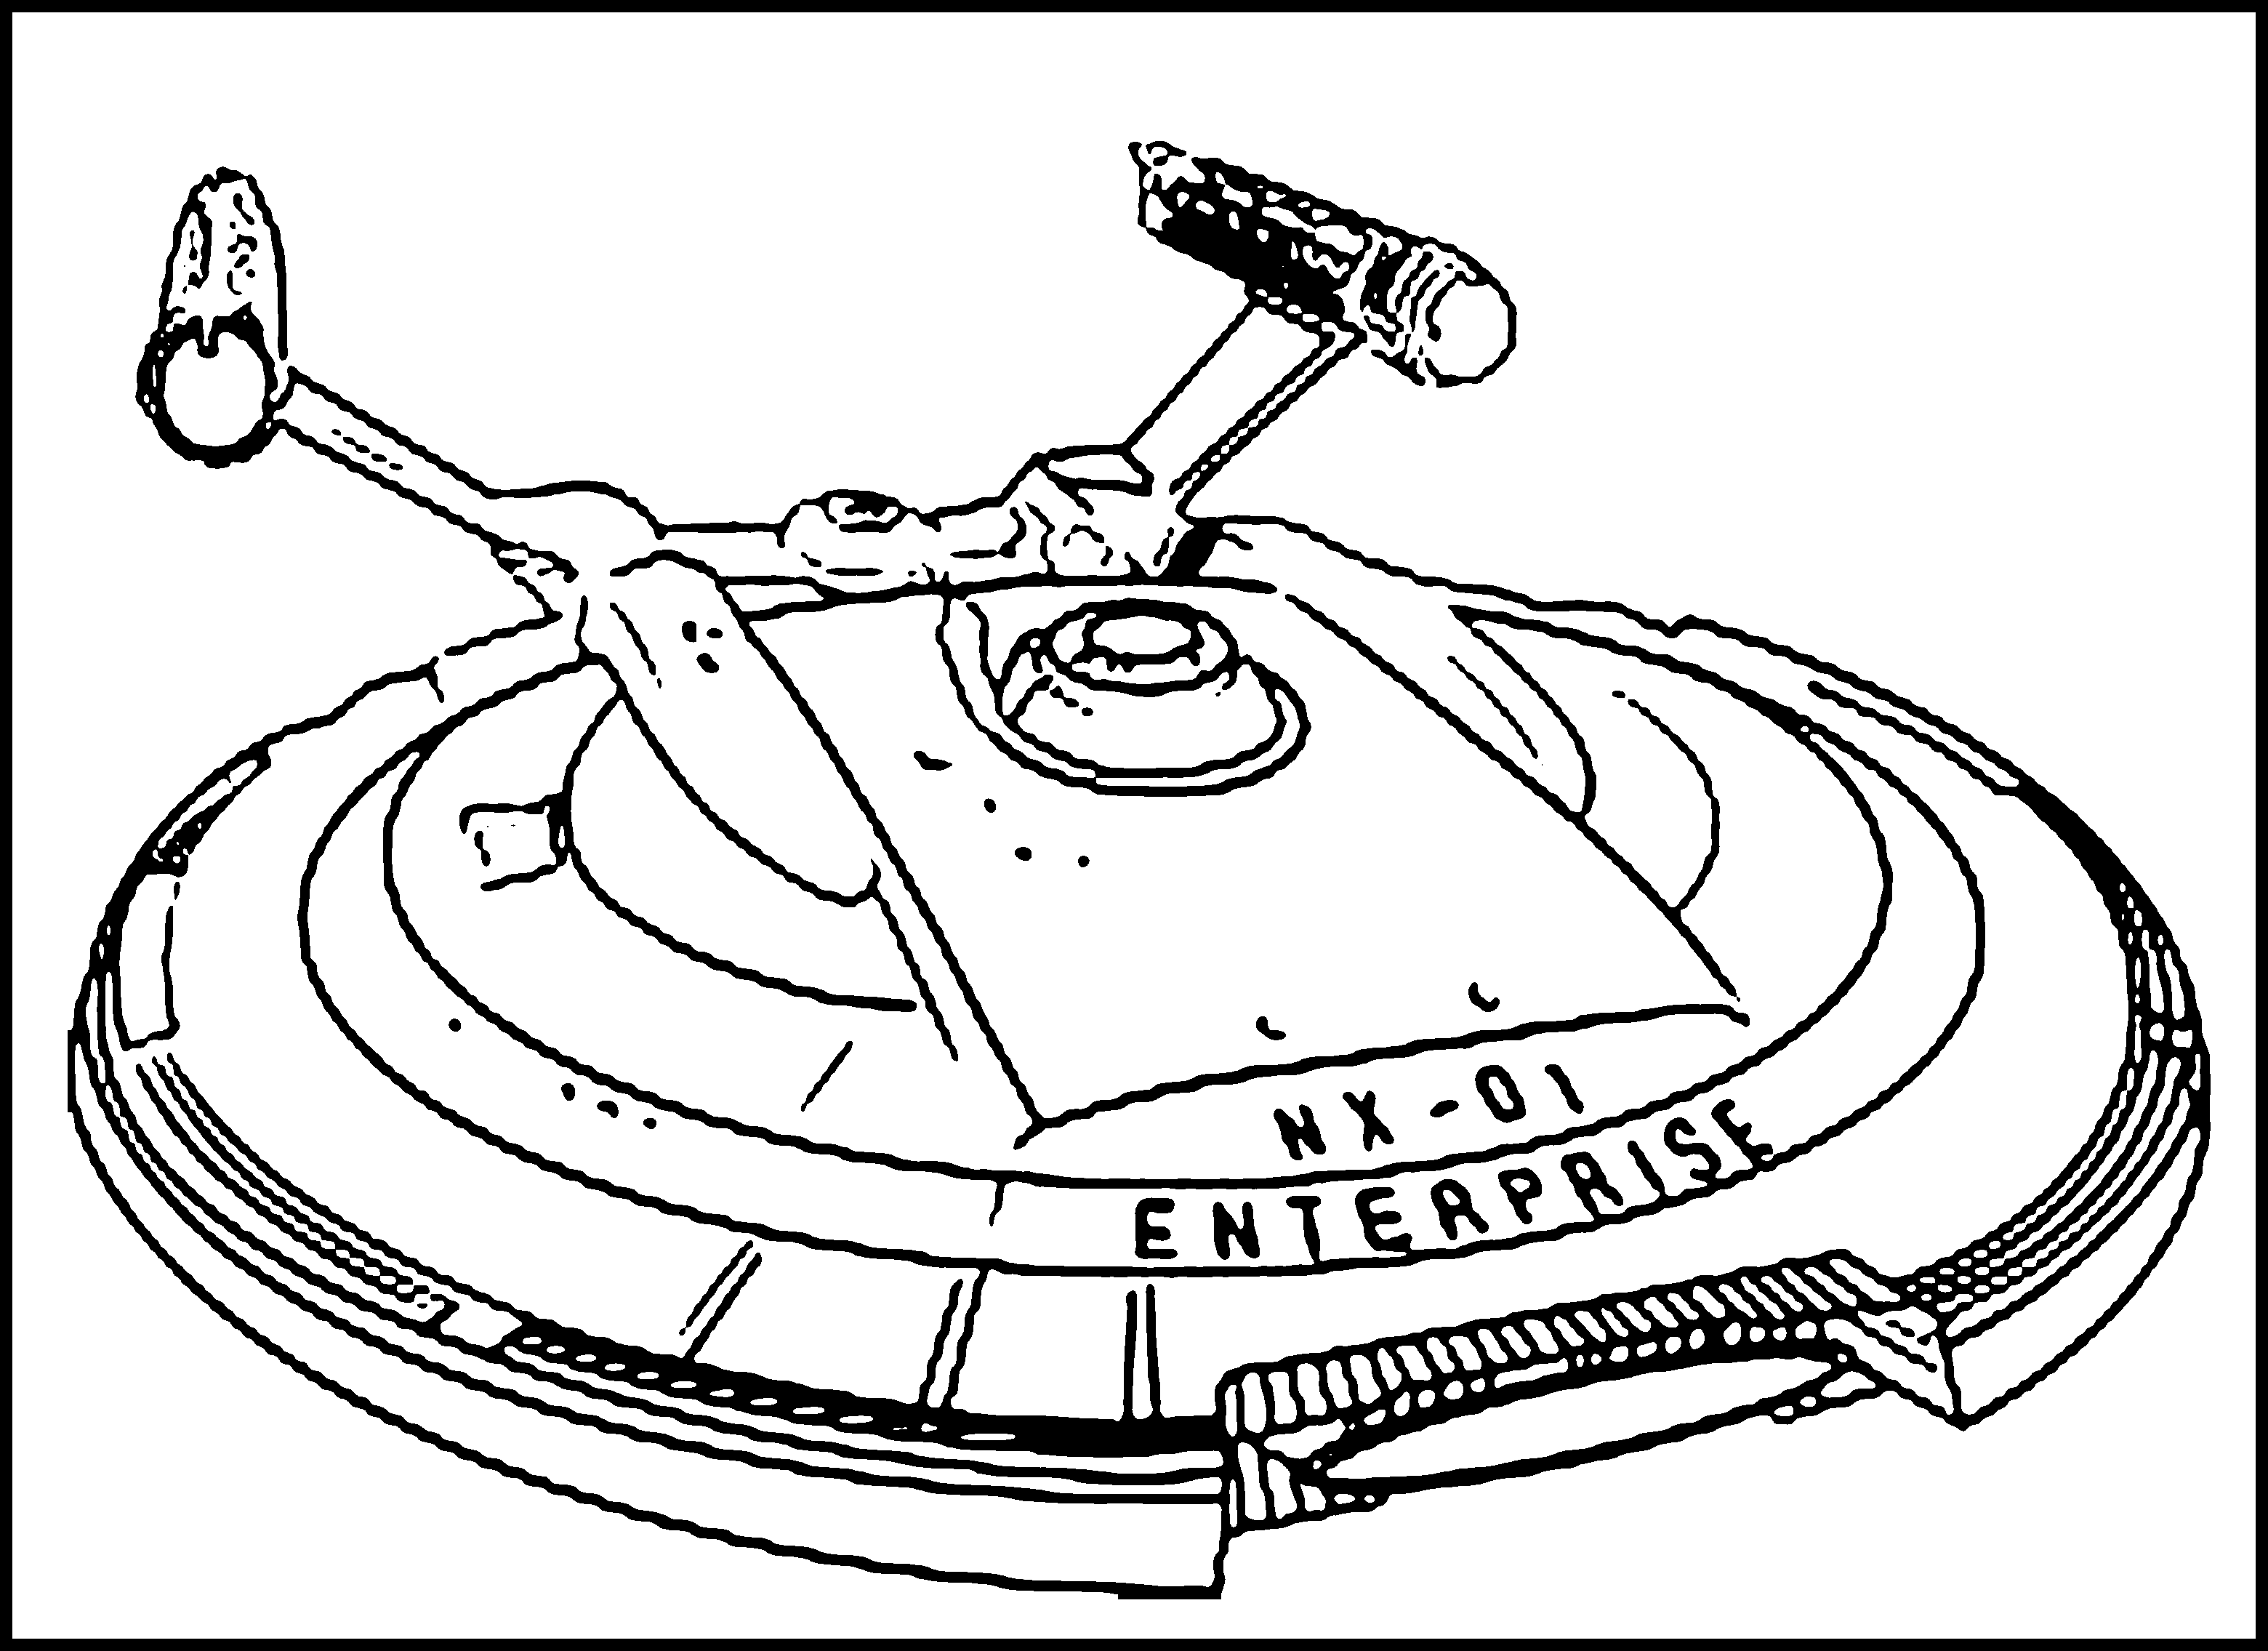 Drawn spaceship outer space Coloring Coloring Printable Page Spaceship